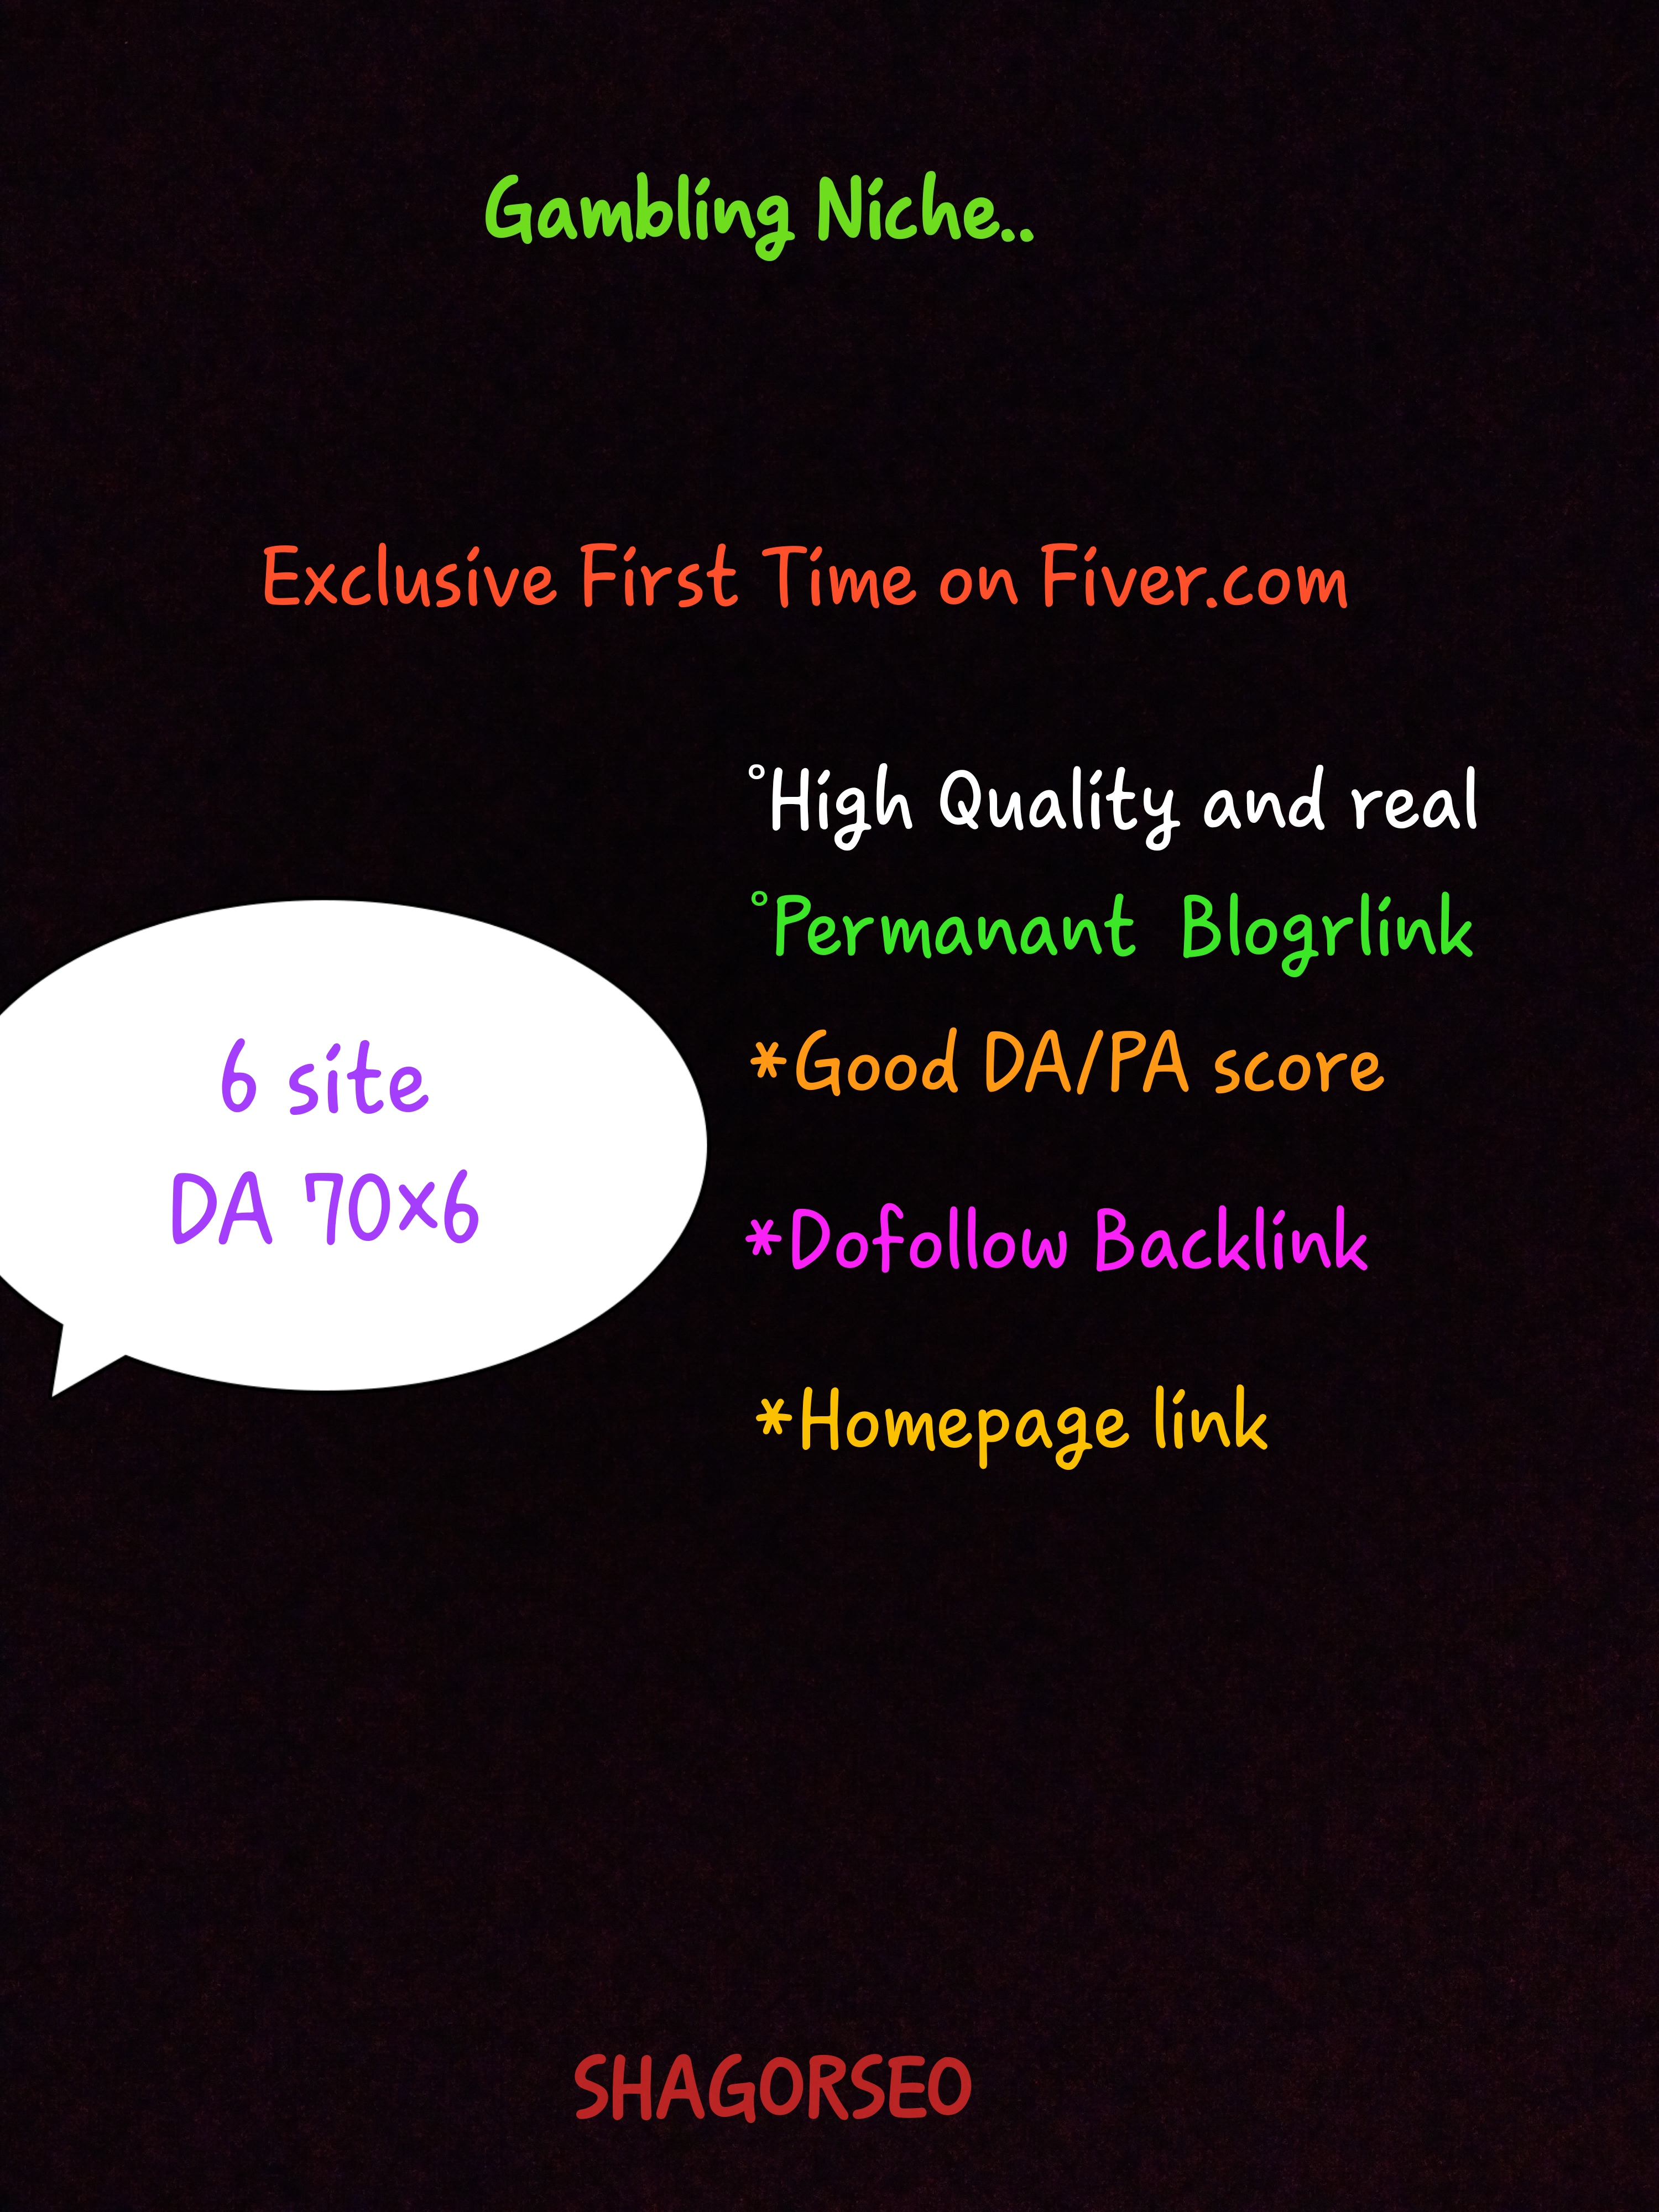 60 CASINO/POKER gambling, judi bola relate PBN backlink with blog post and google fast page ranking